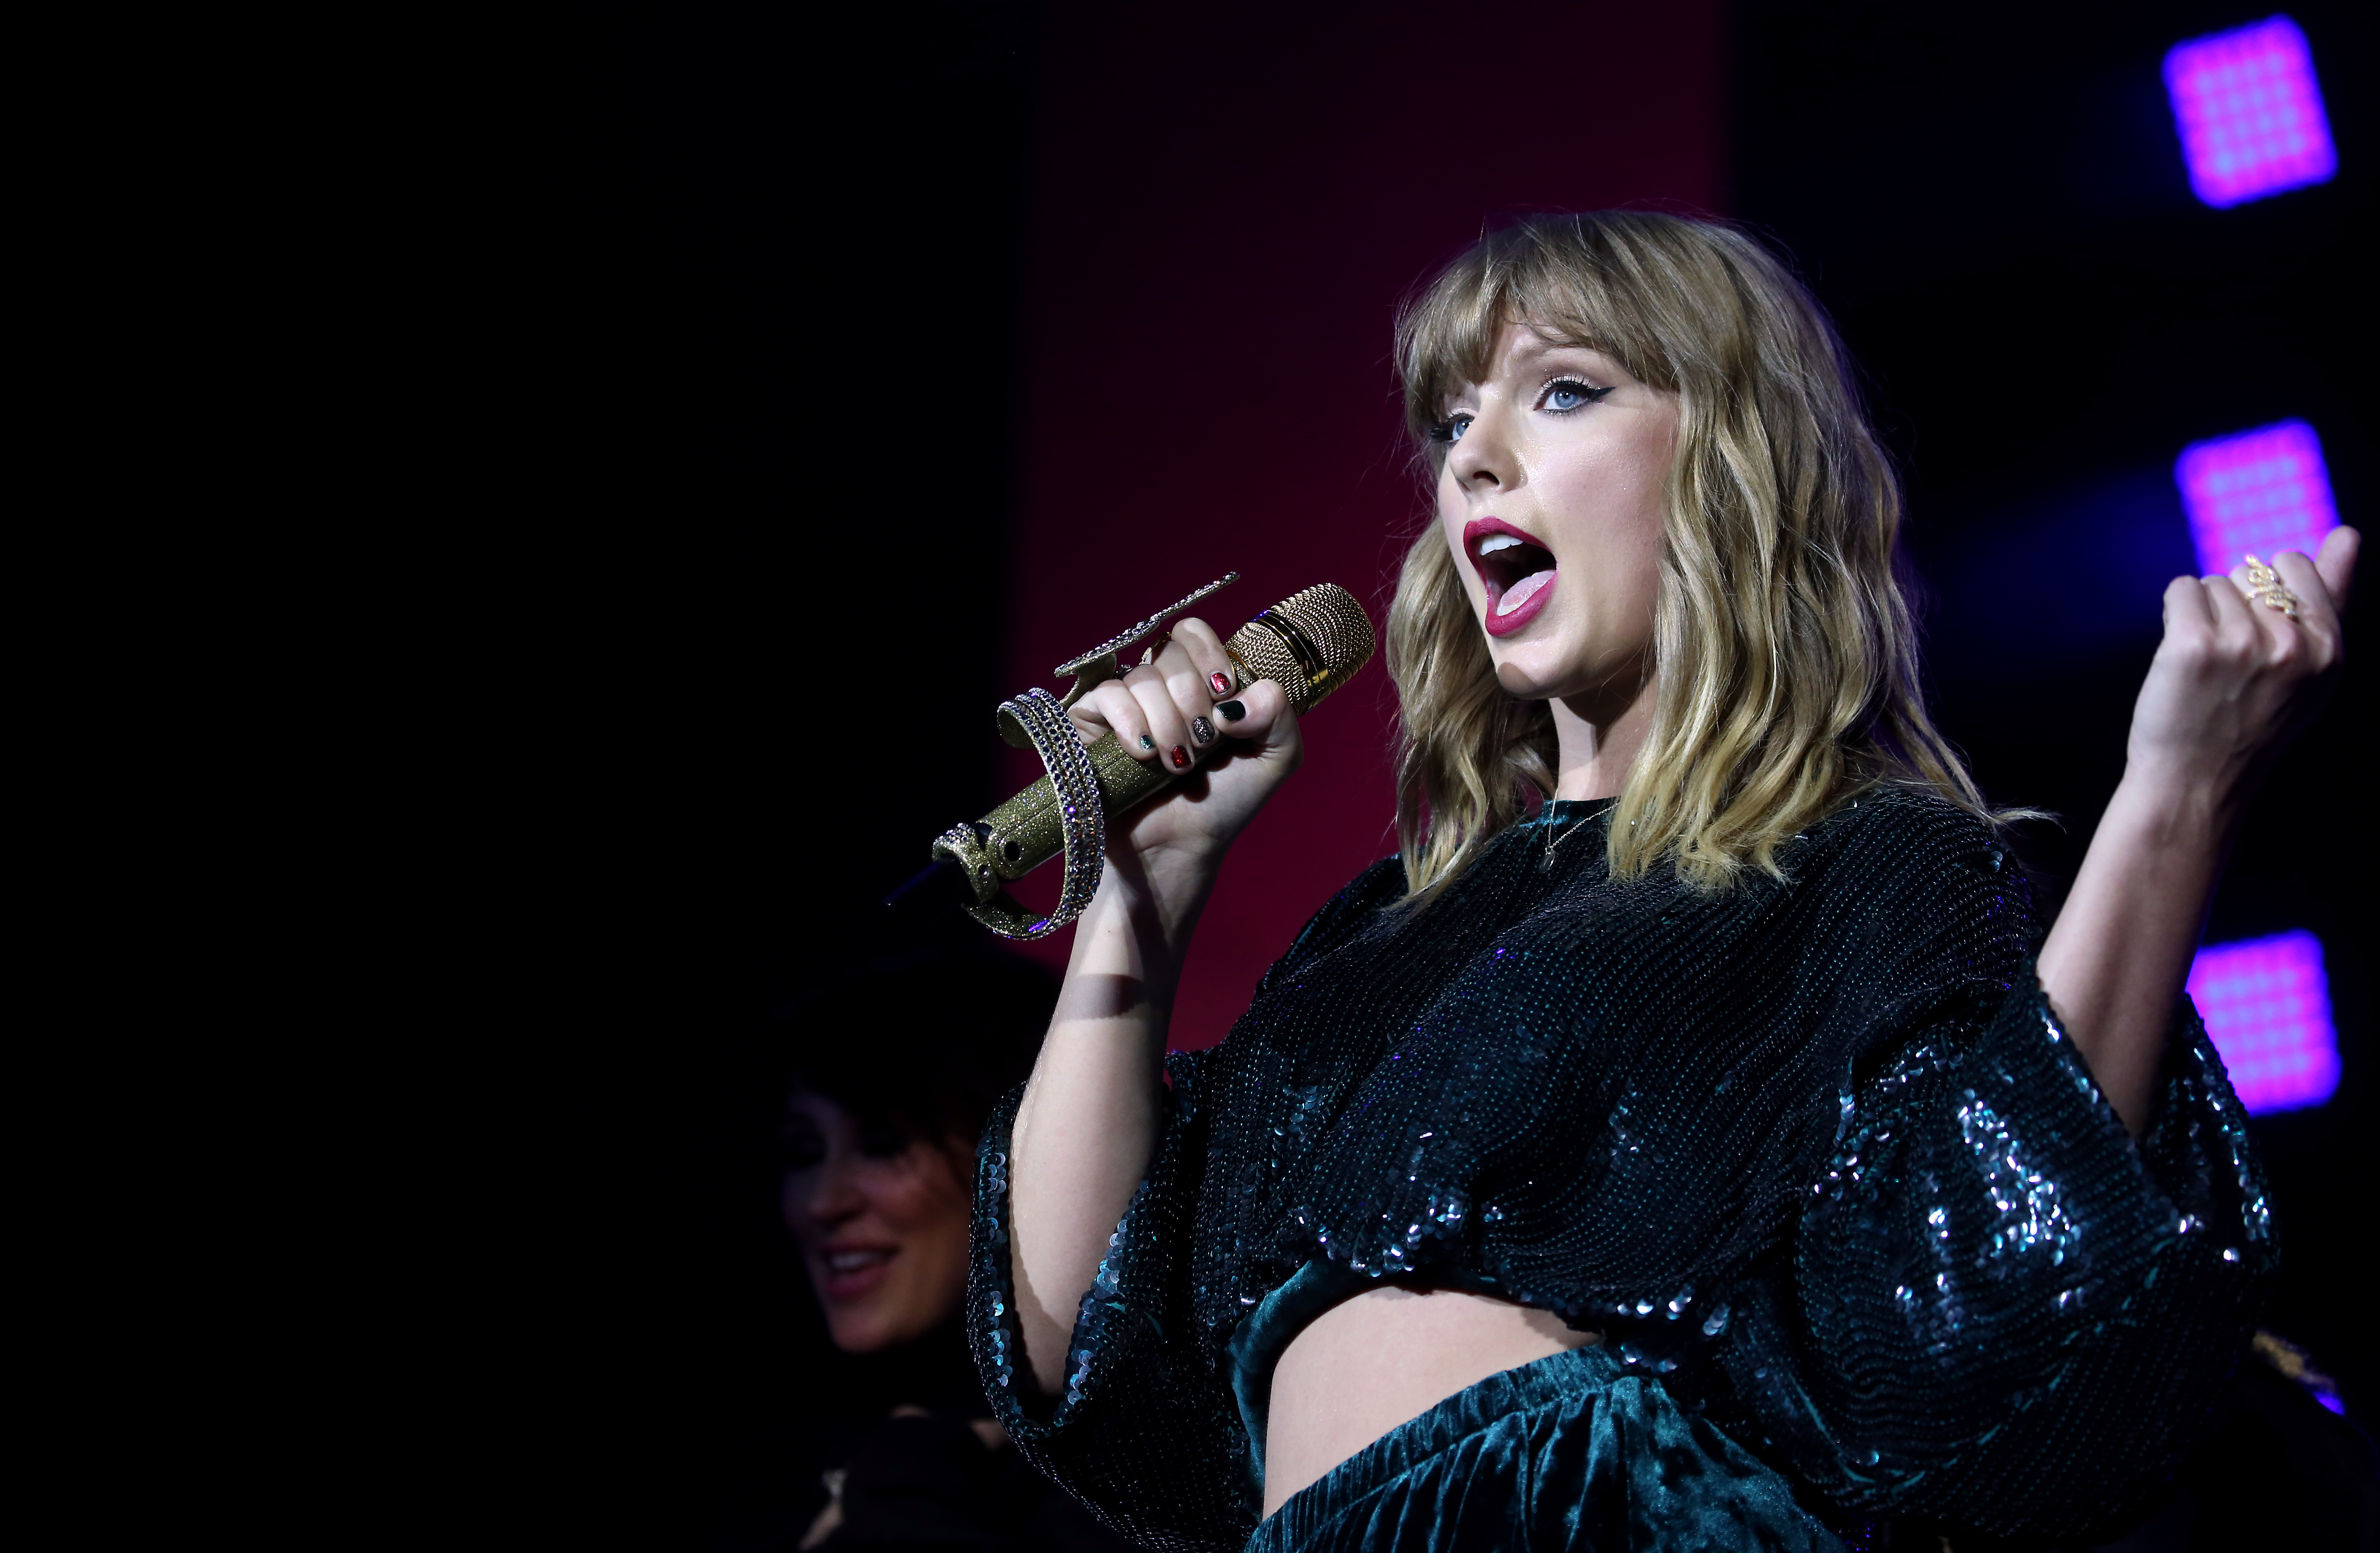 Taylor Swift performs on stage during day two of Capital's Jingle Bell Ball with Coca-Cola at London's O2 Arena.